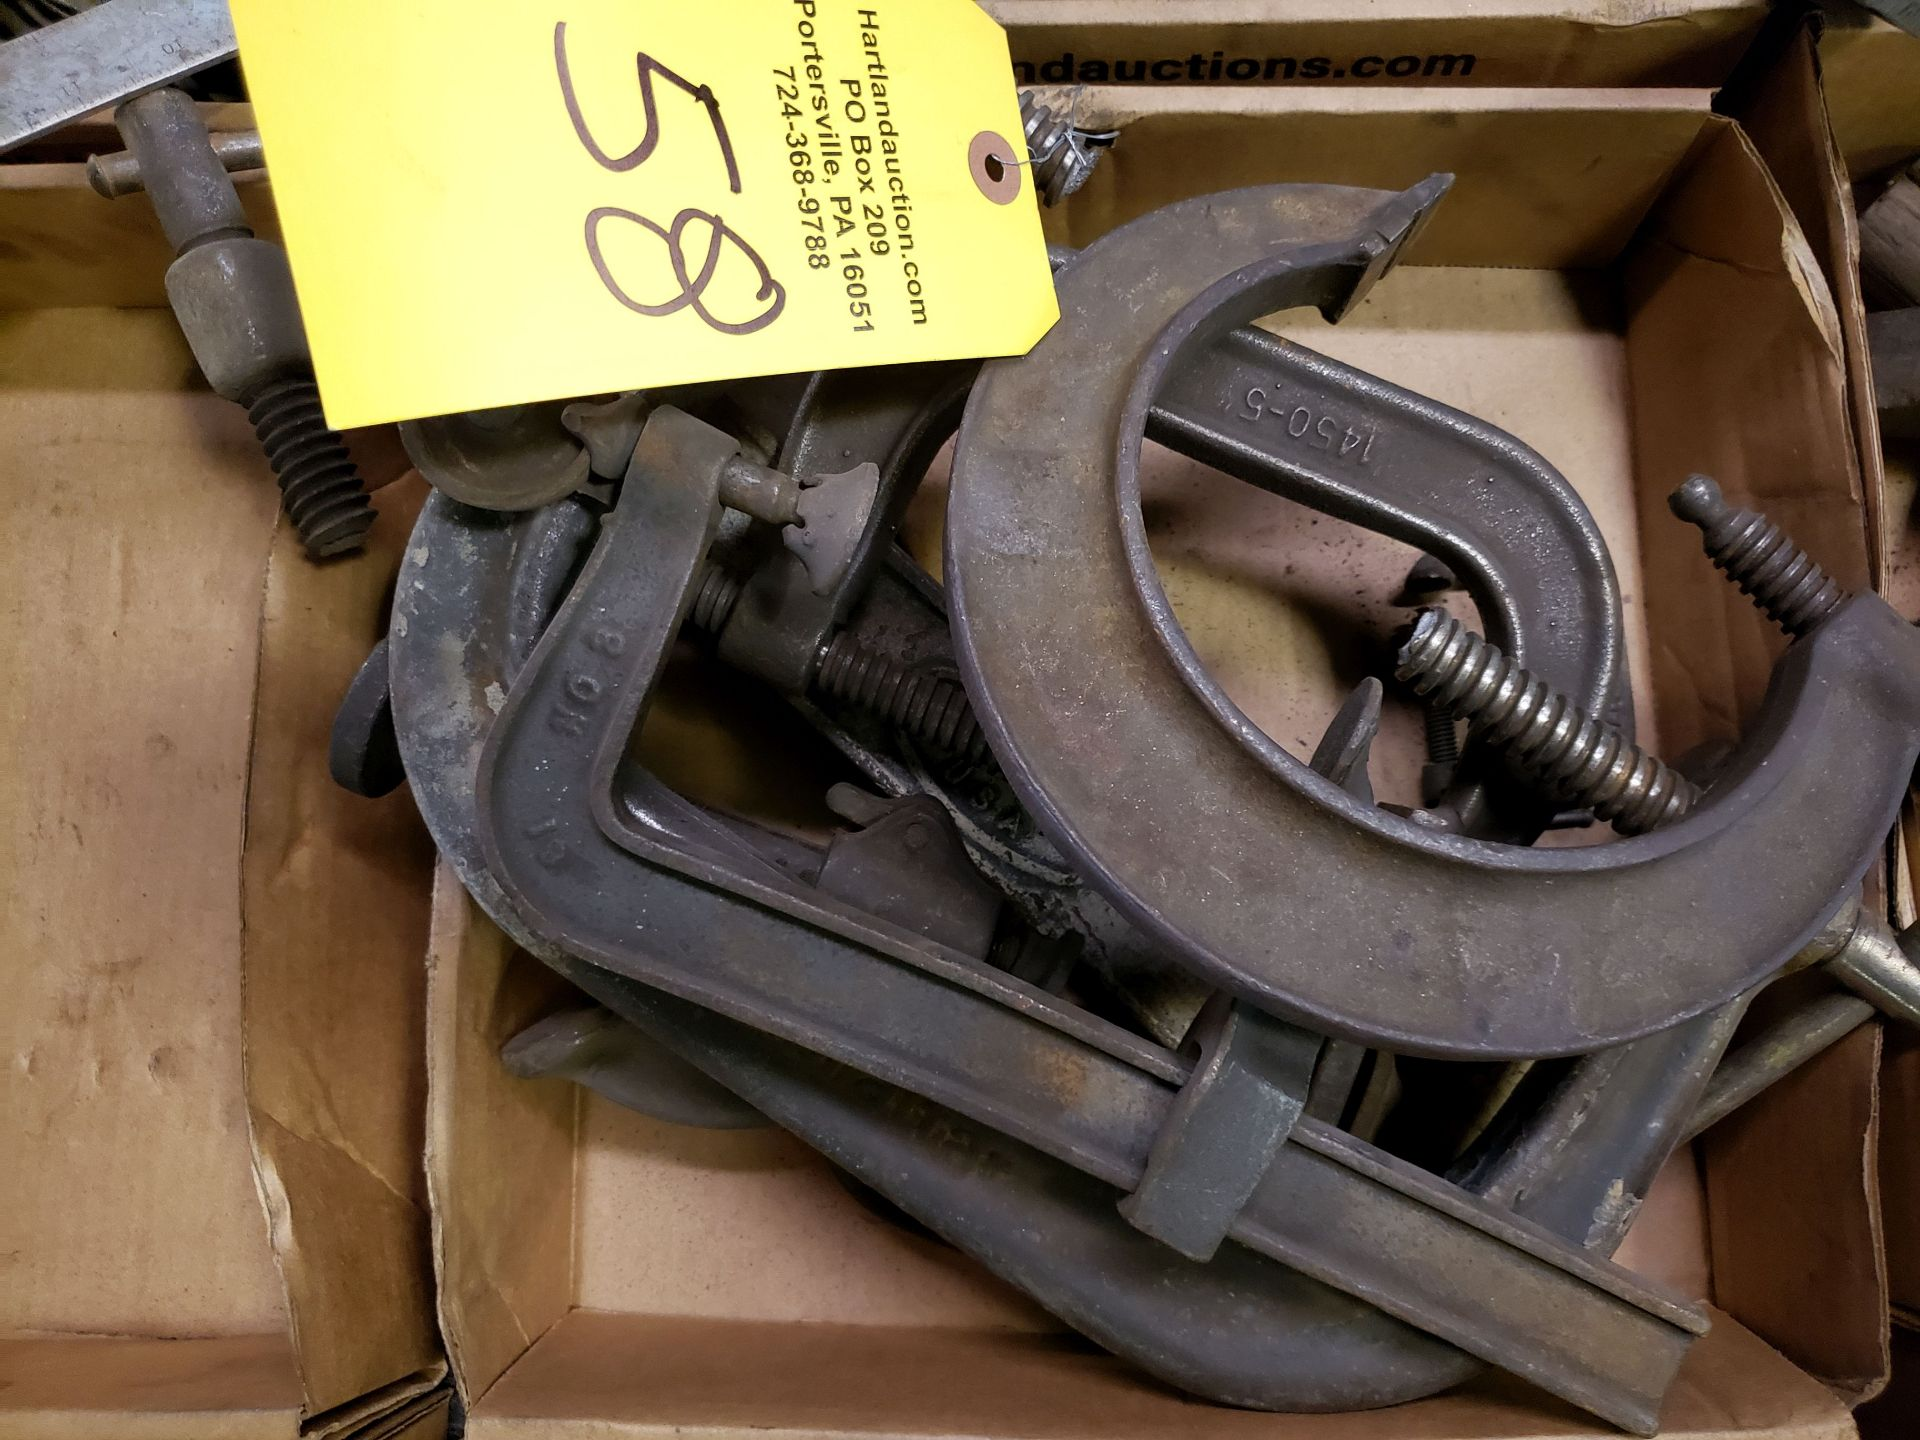 Lot 58 - C-CLAMPS